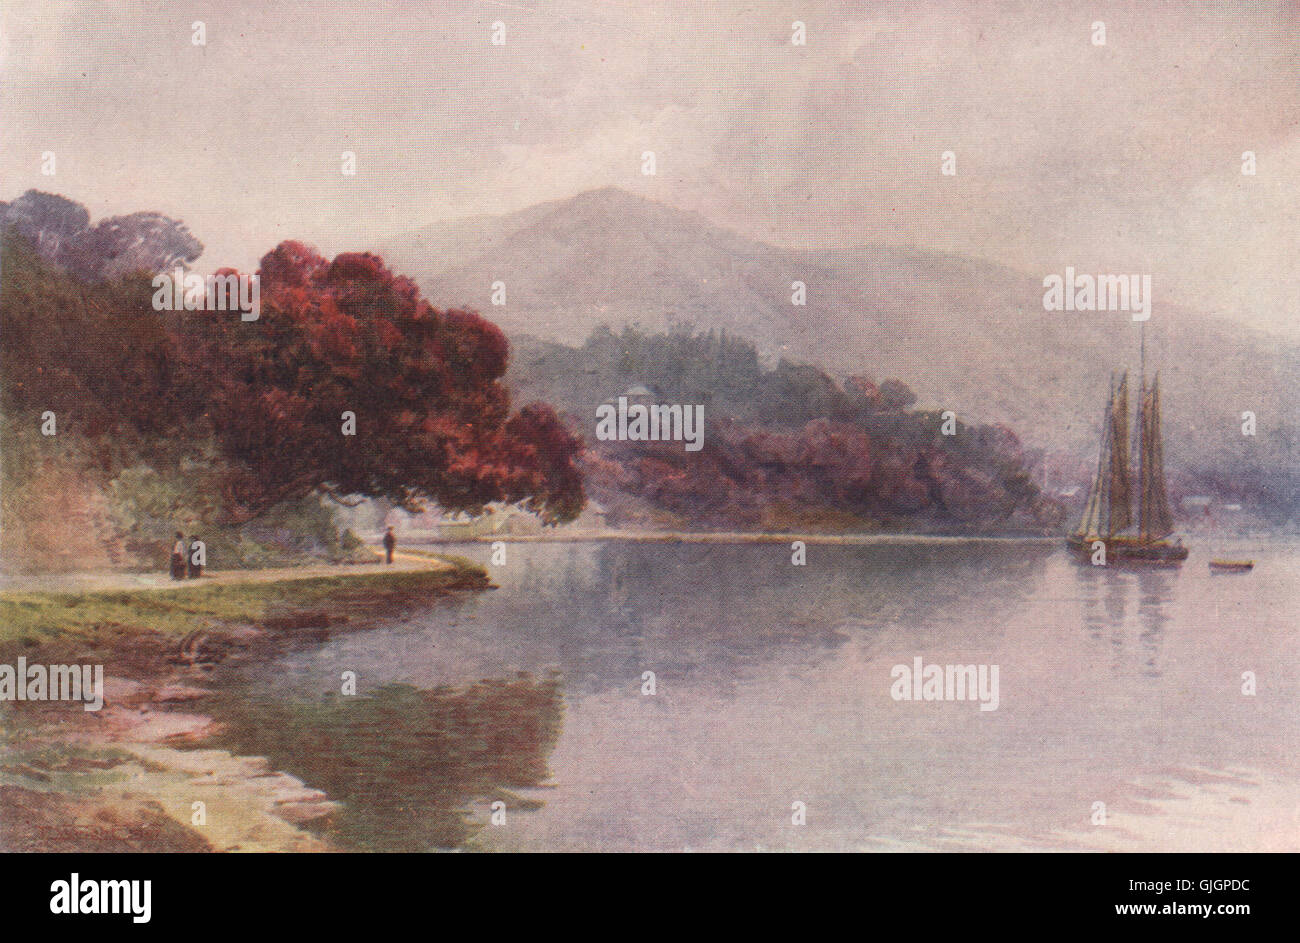 Whangaroa Harbour/' by Frank Wright New Zealand 1908 old print /'Waihi Bay